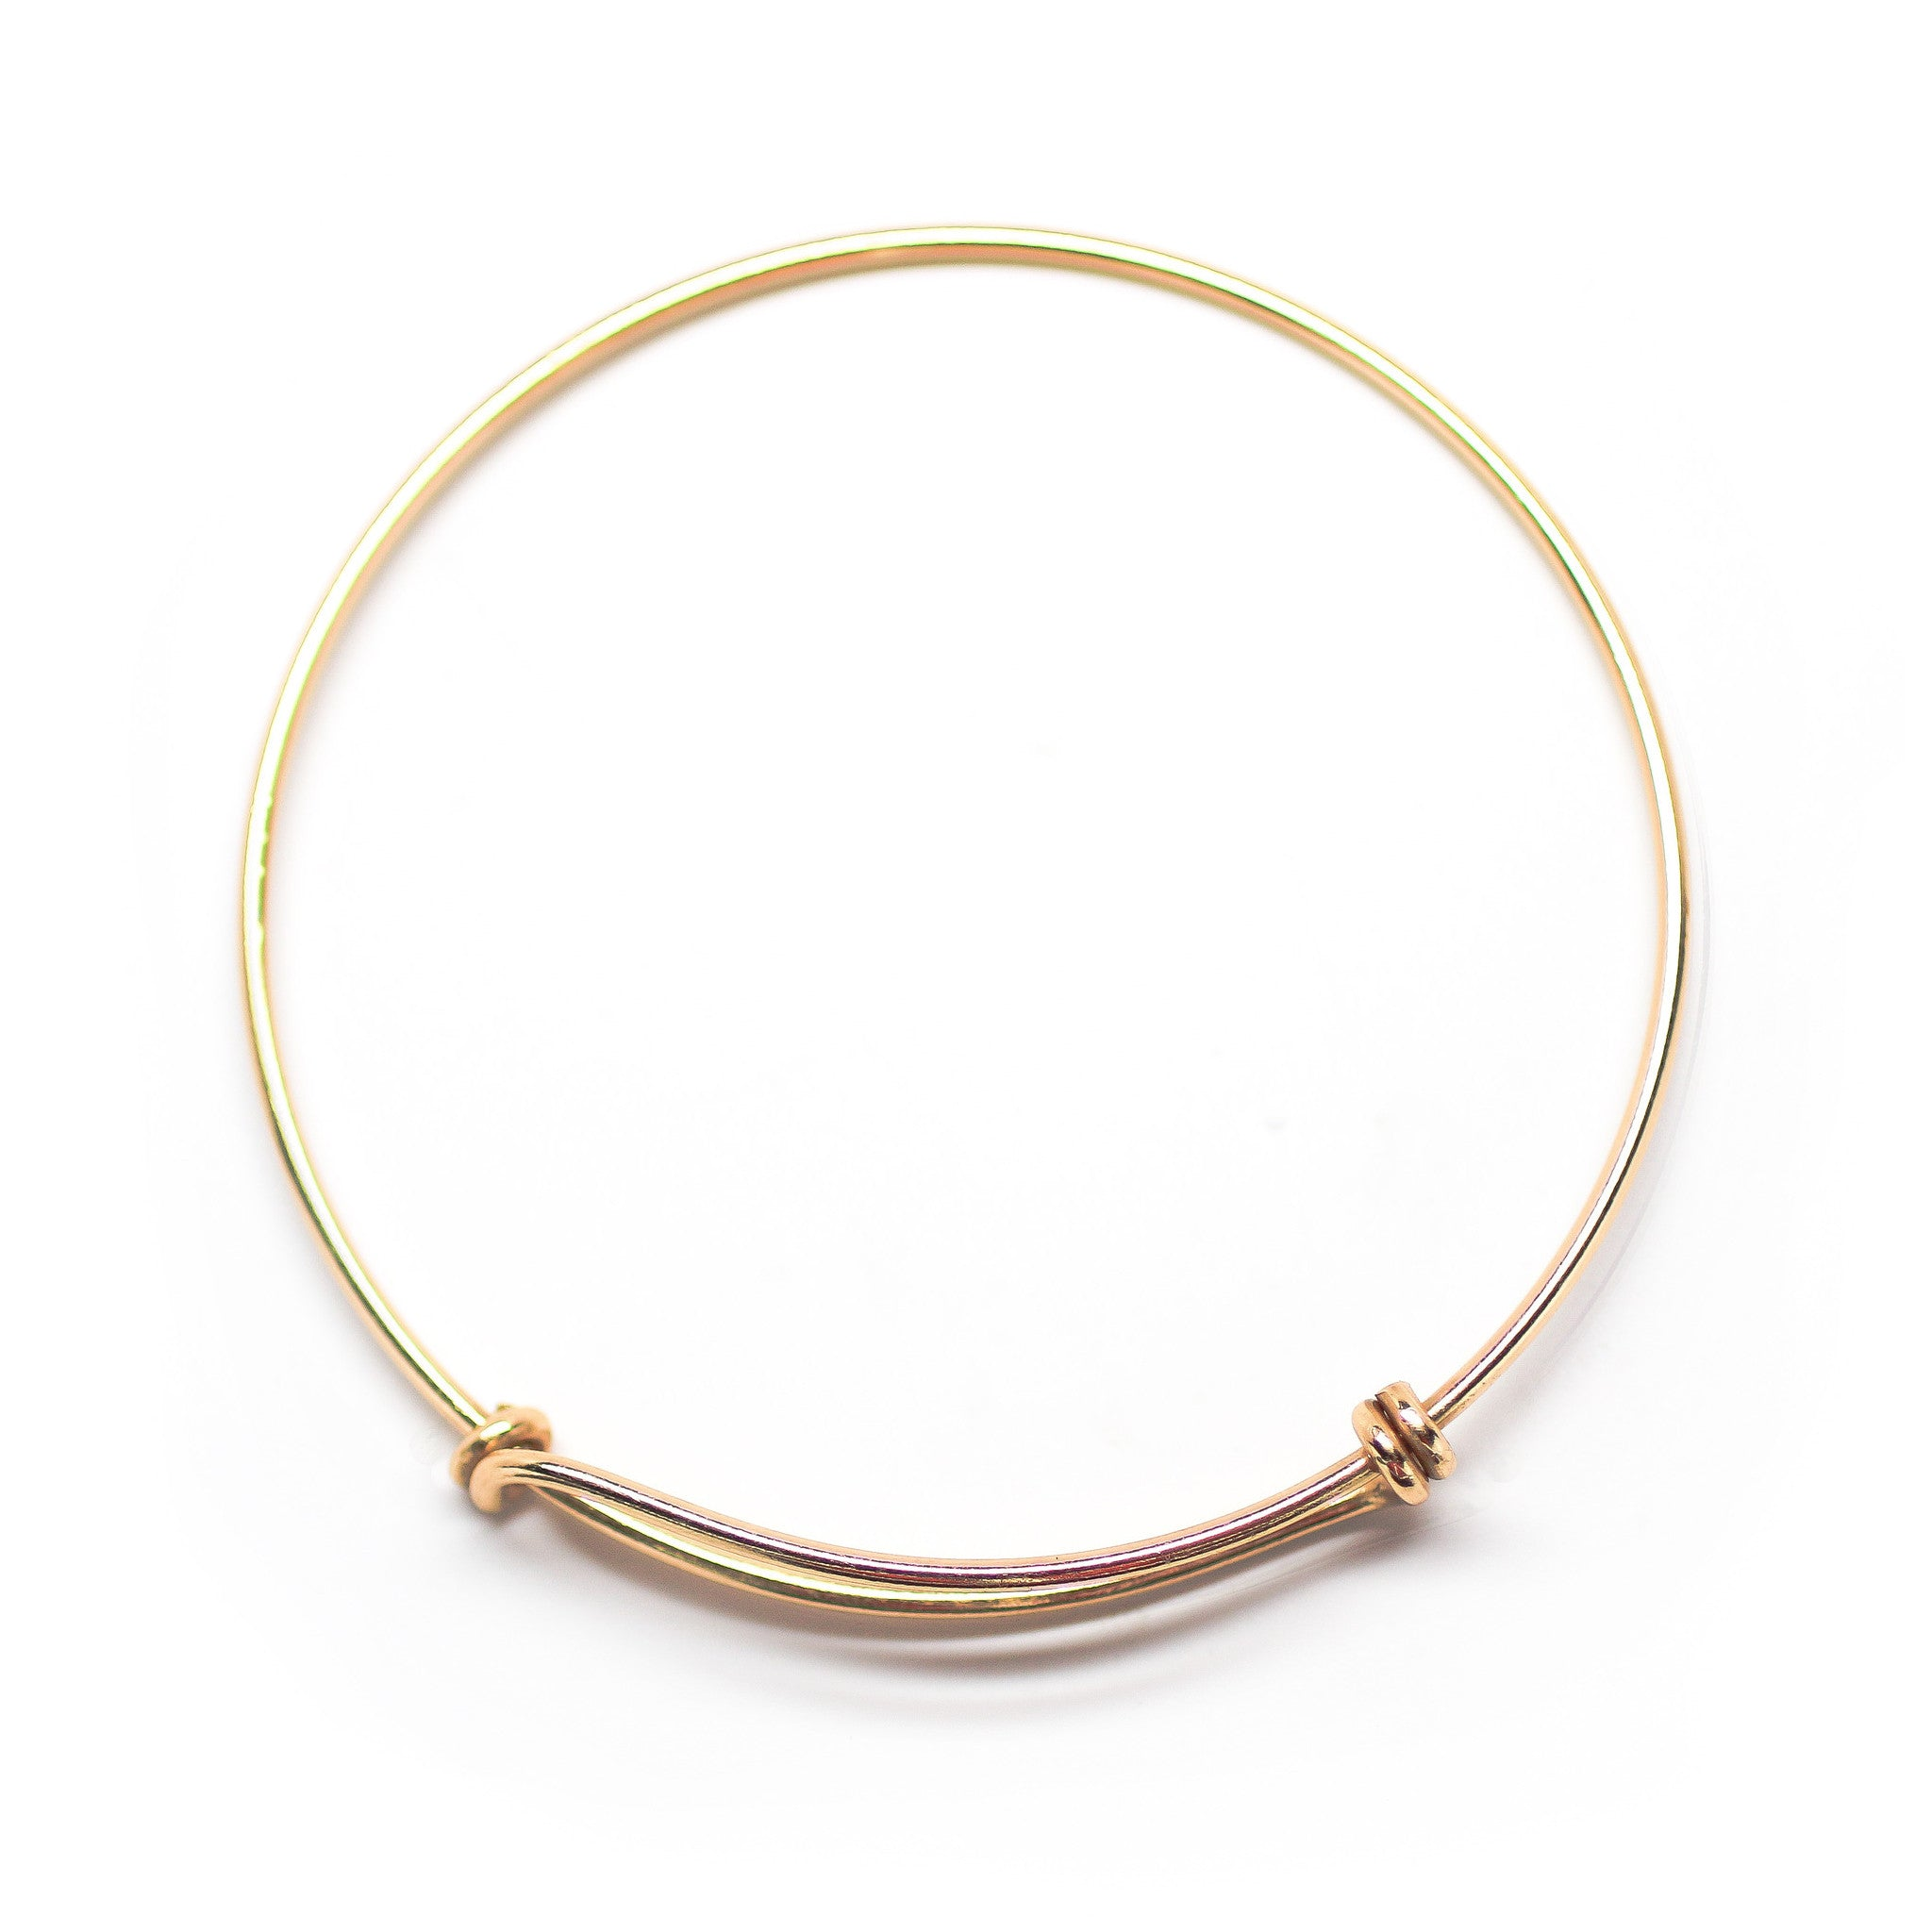 lyst bracelets as bracelet in good york charm jewelry product bangles new bangle gallery gold kate spade